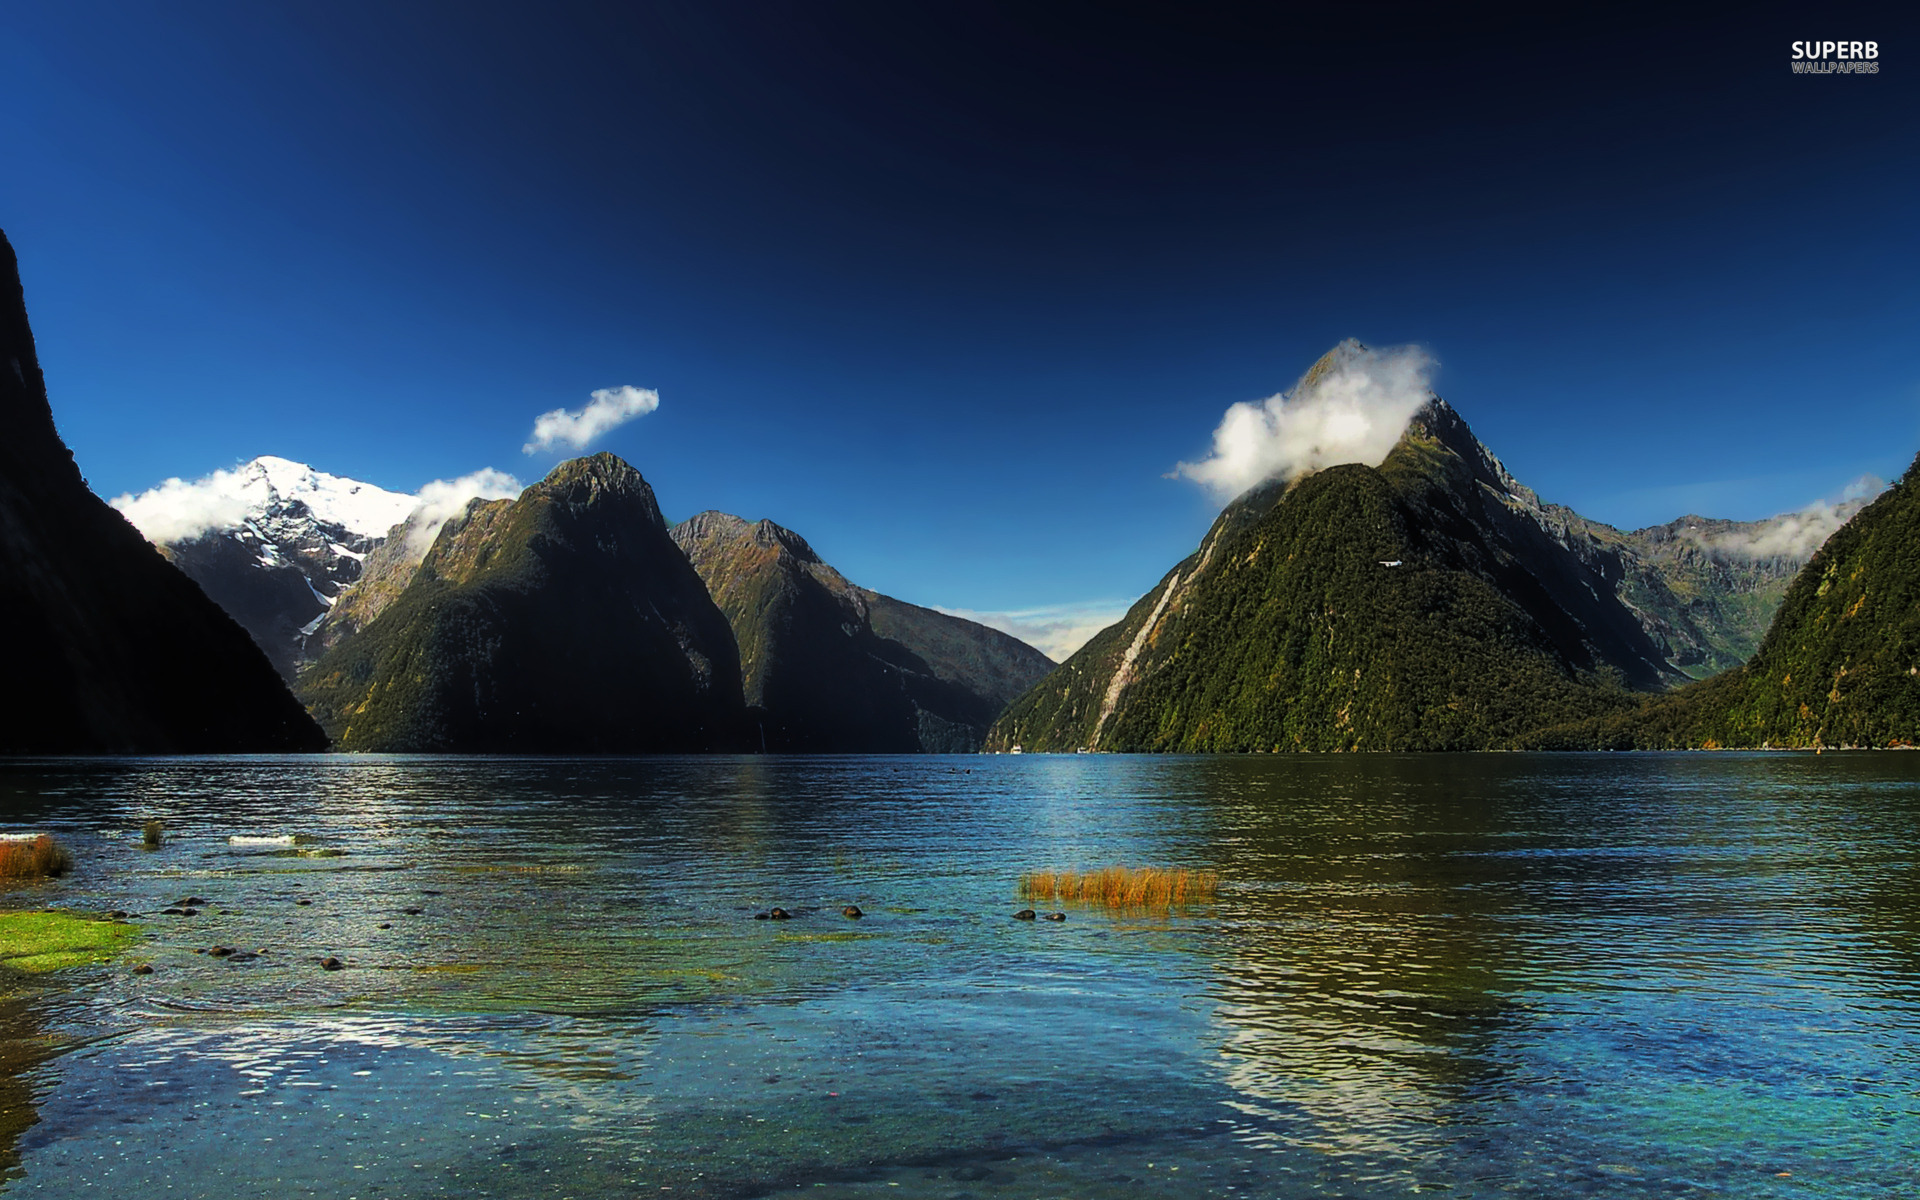 Active_Tranquility, New Zealand  № 3155712 загрузить